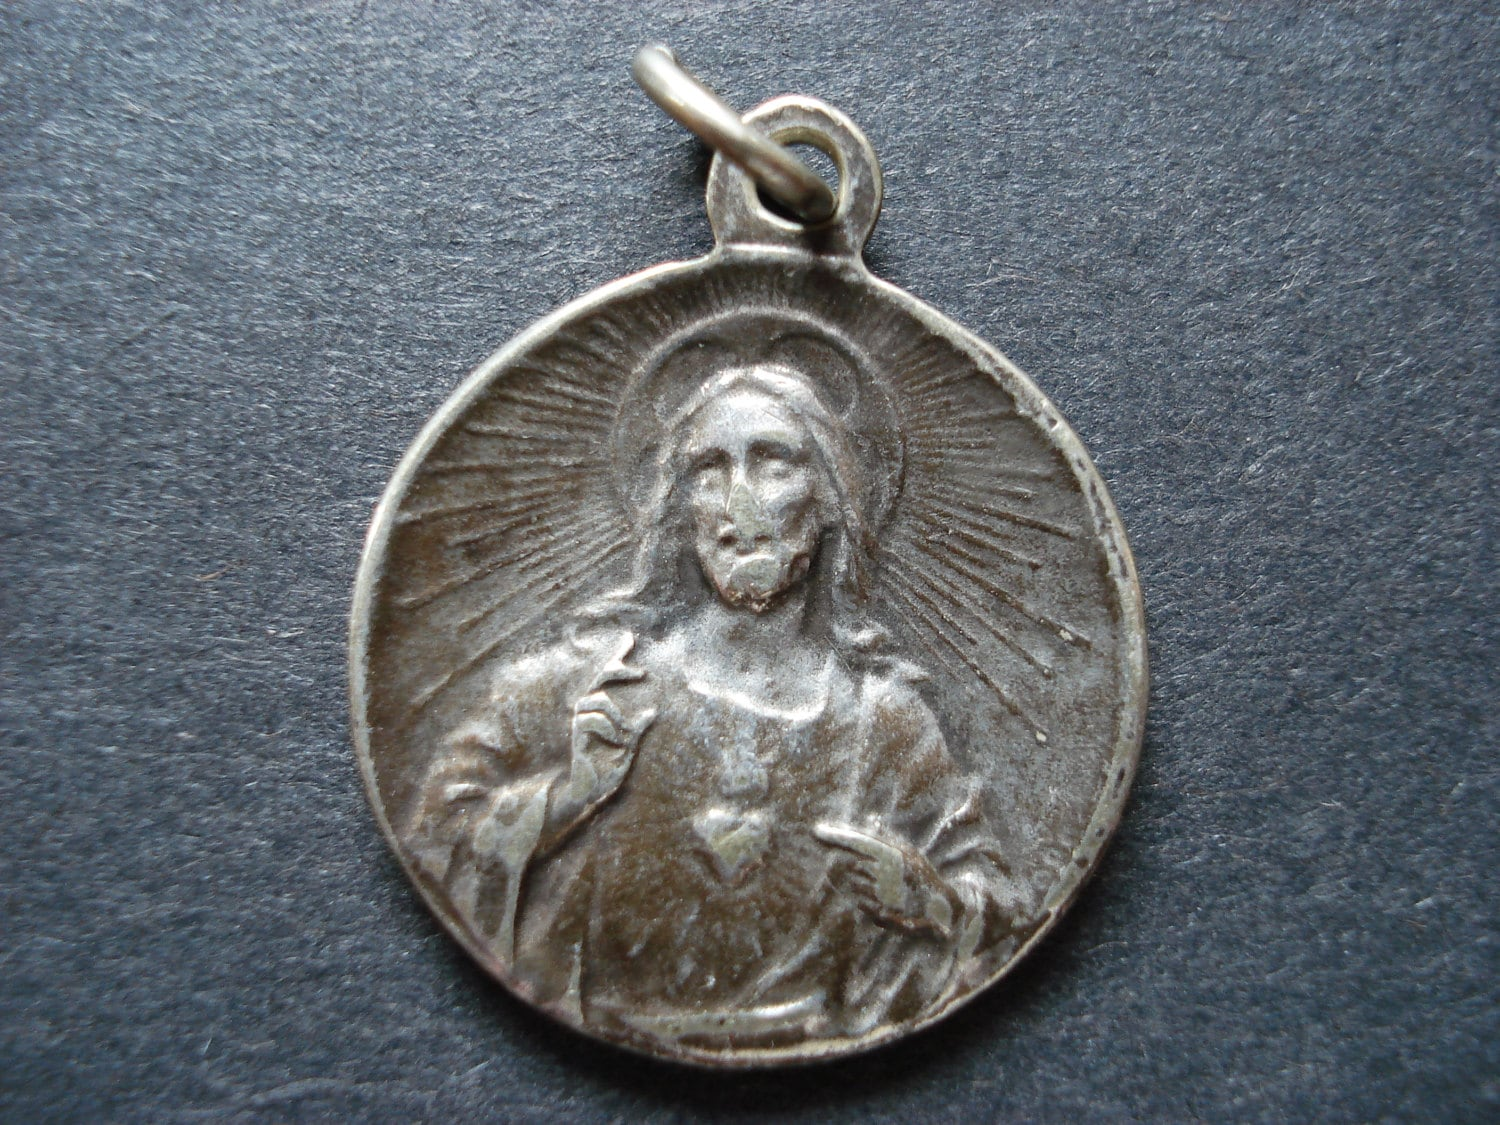 medallion fullxfull antique god lamb of bracelet jewelry il bronze agnus necklace sterling pendant listing silver catholic medal dei